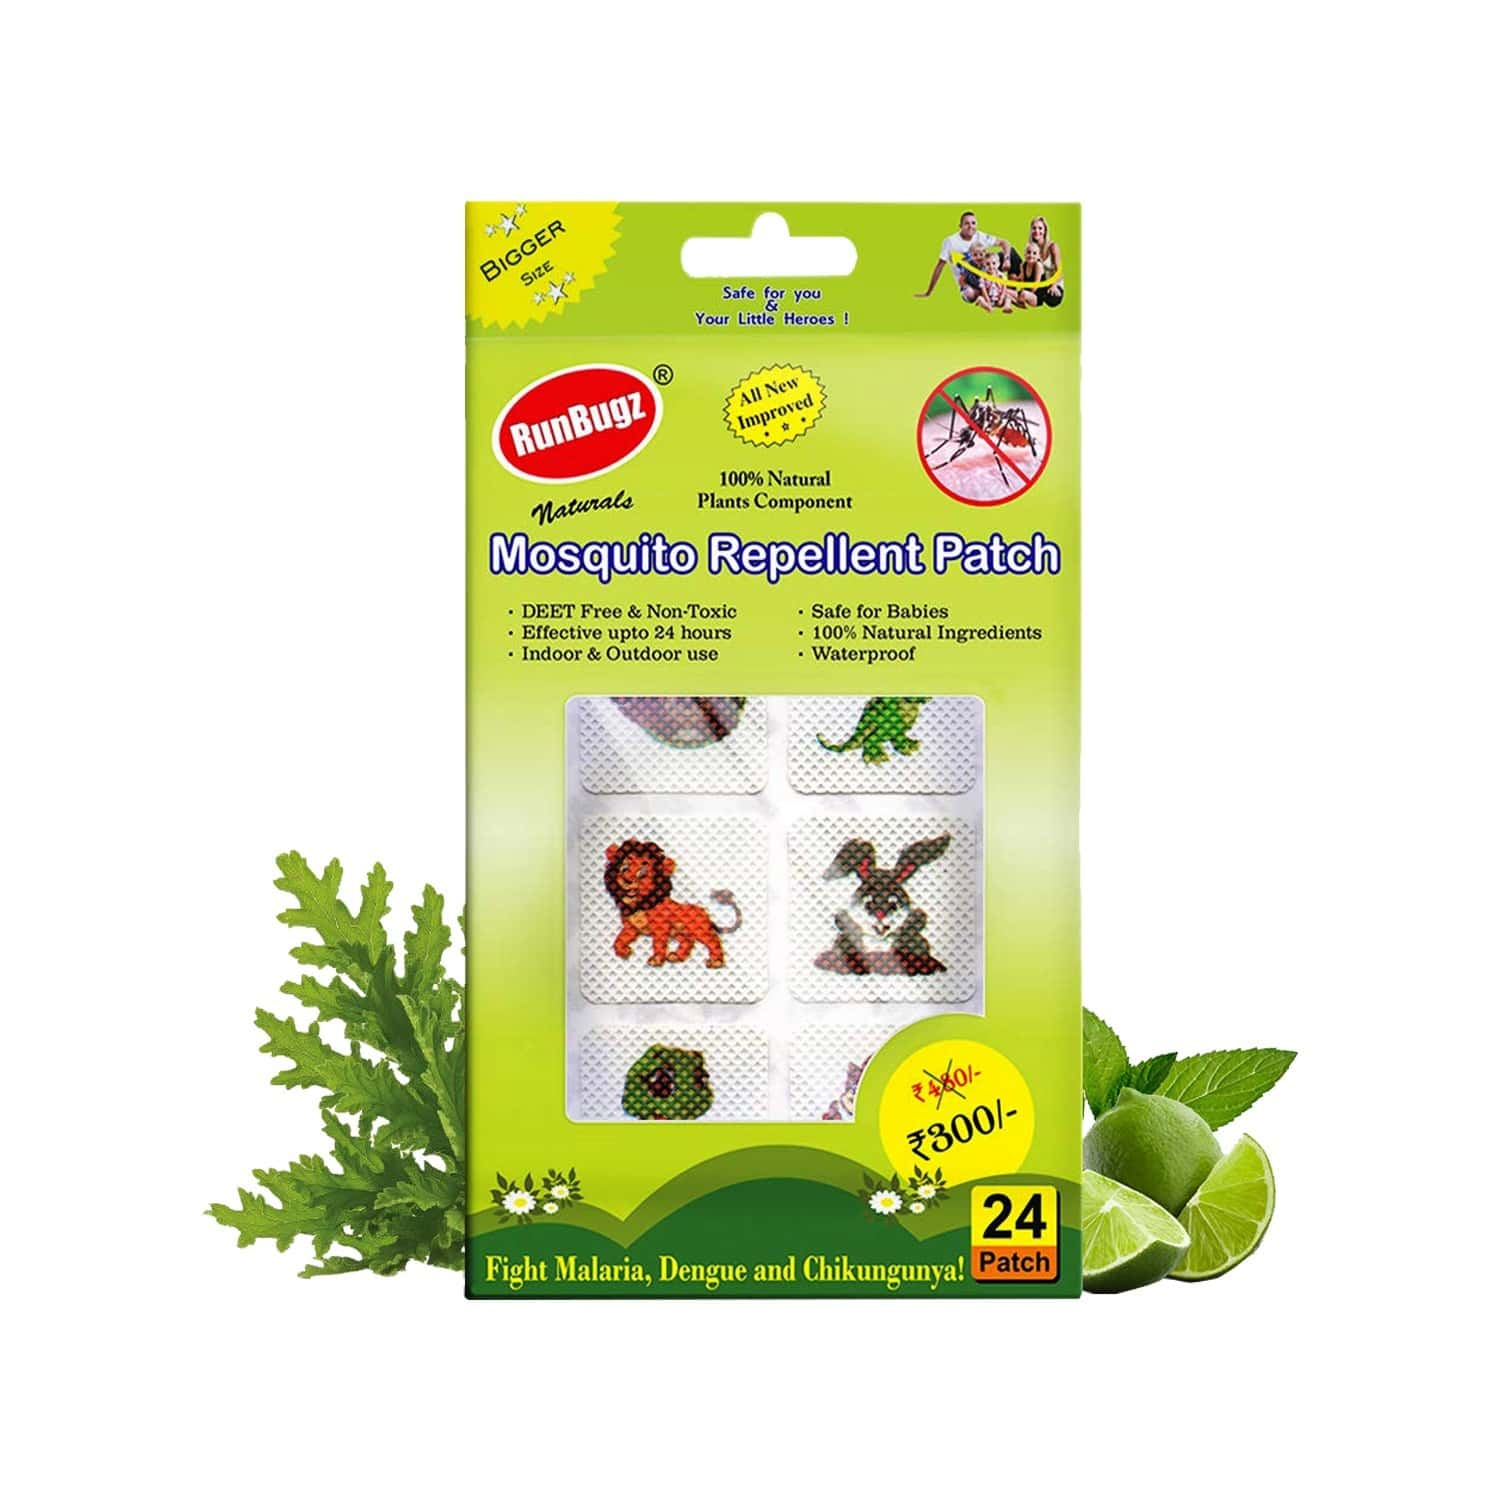 Runbugz Mosquito Repellent Cute Animal Patches For Babies, 24 Patches